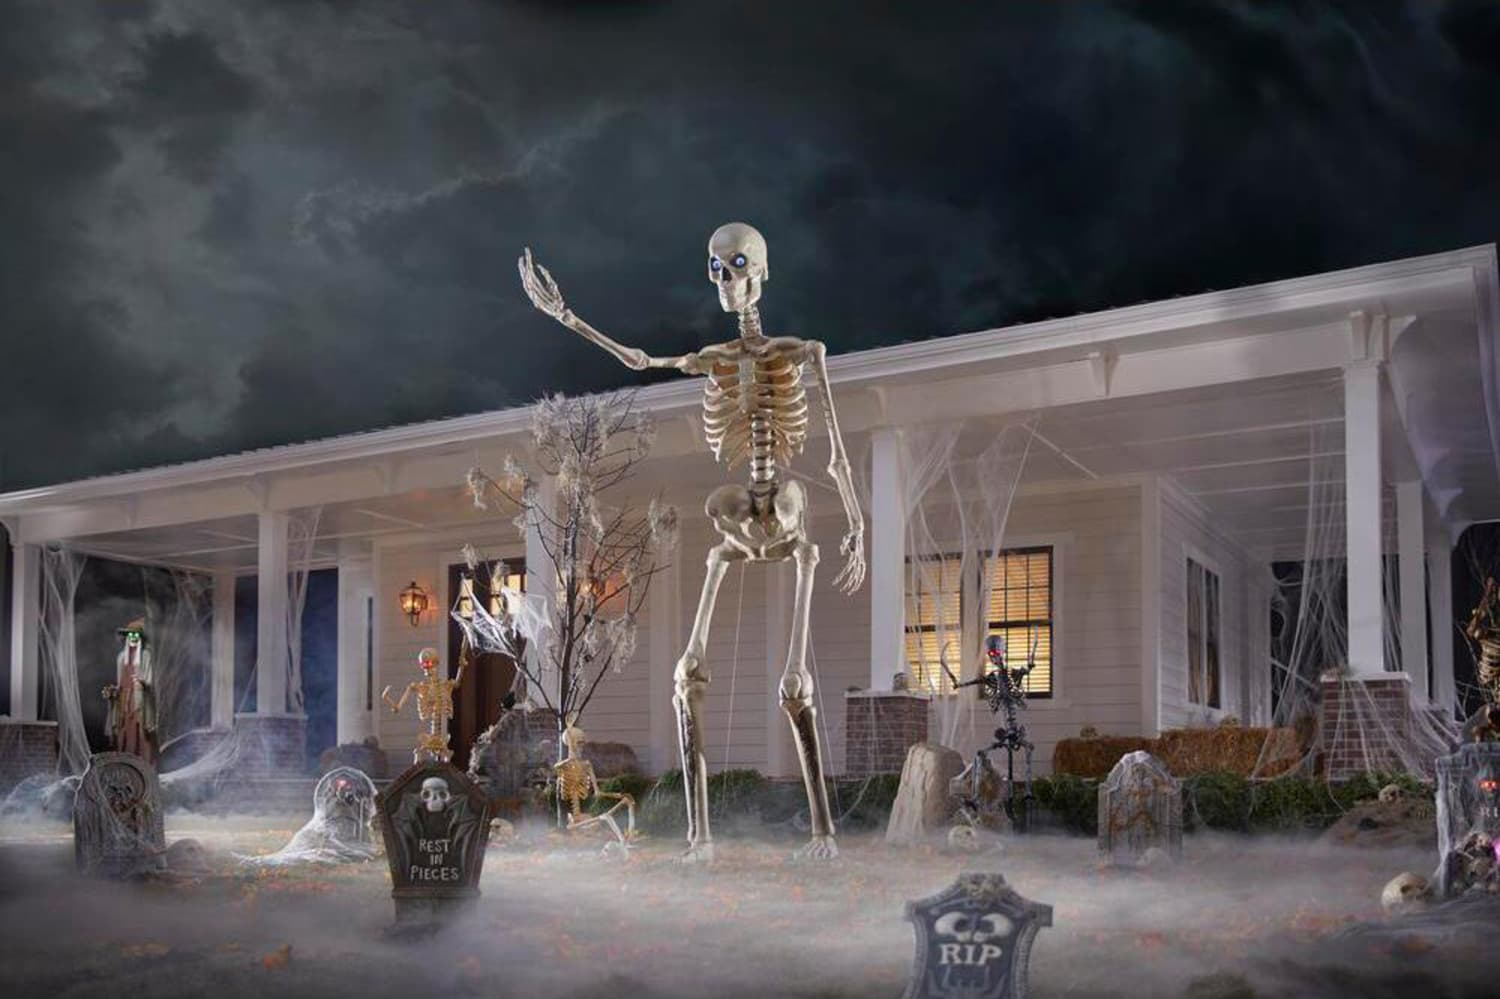 Home Depot's 12-Foot-Tall Skeleton Is the Star of Halloween Memes